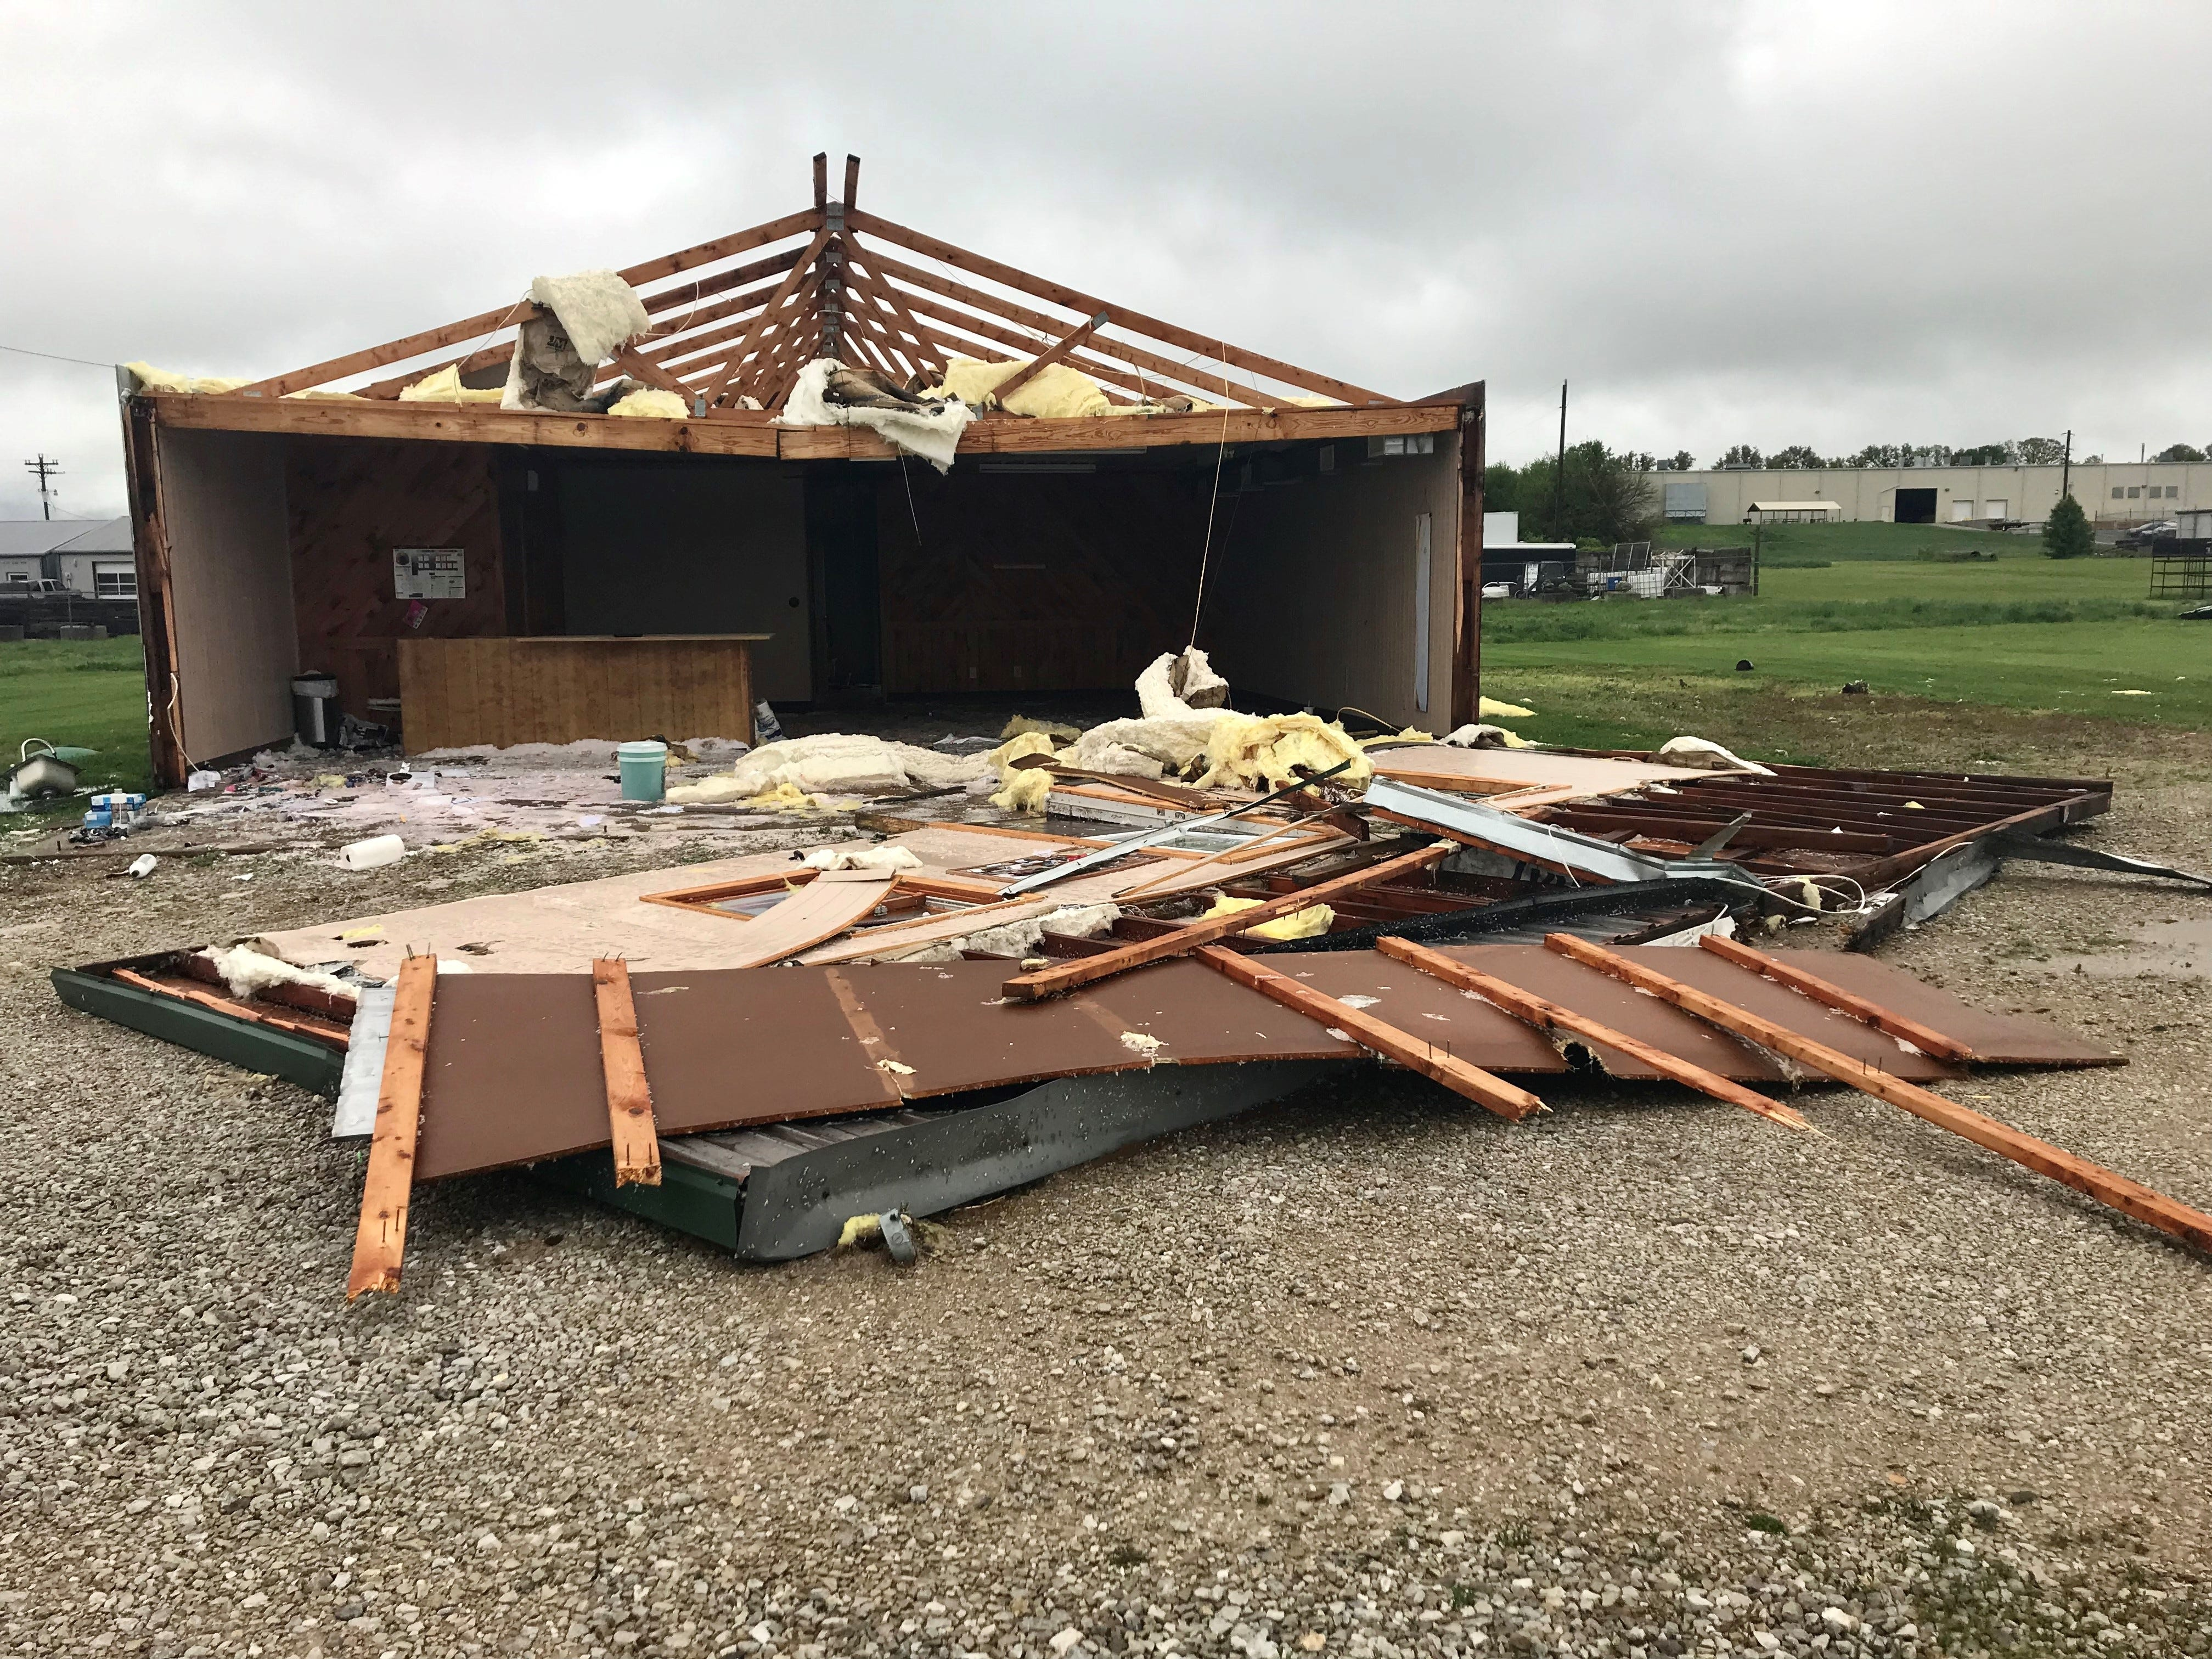 A building on Endeavor Drive in Rogersville was damaged by the storms on Tuesday, April 30, 2019.